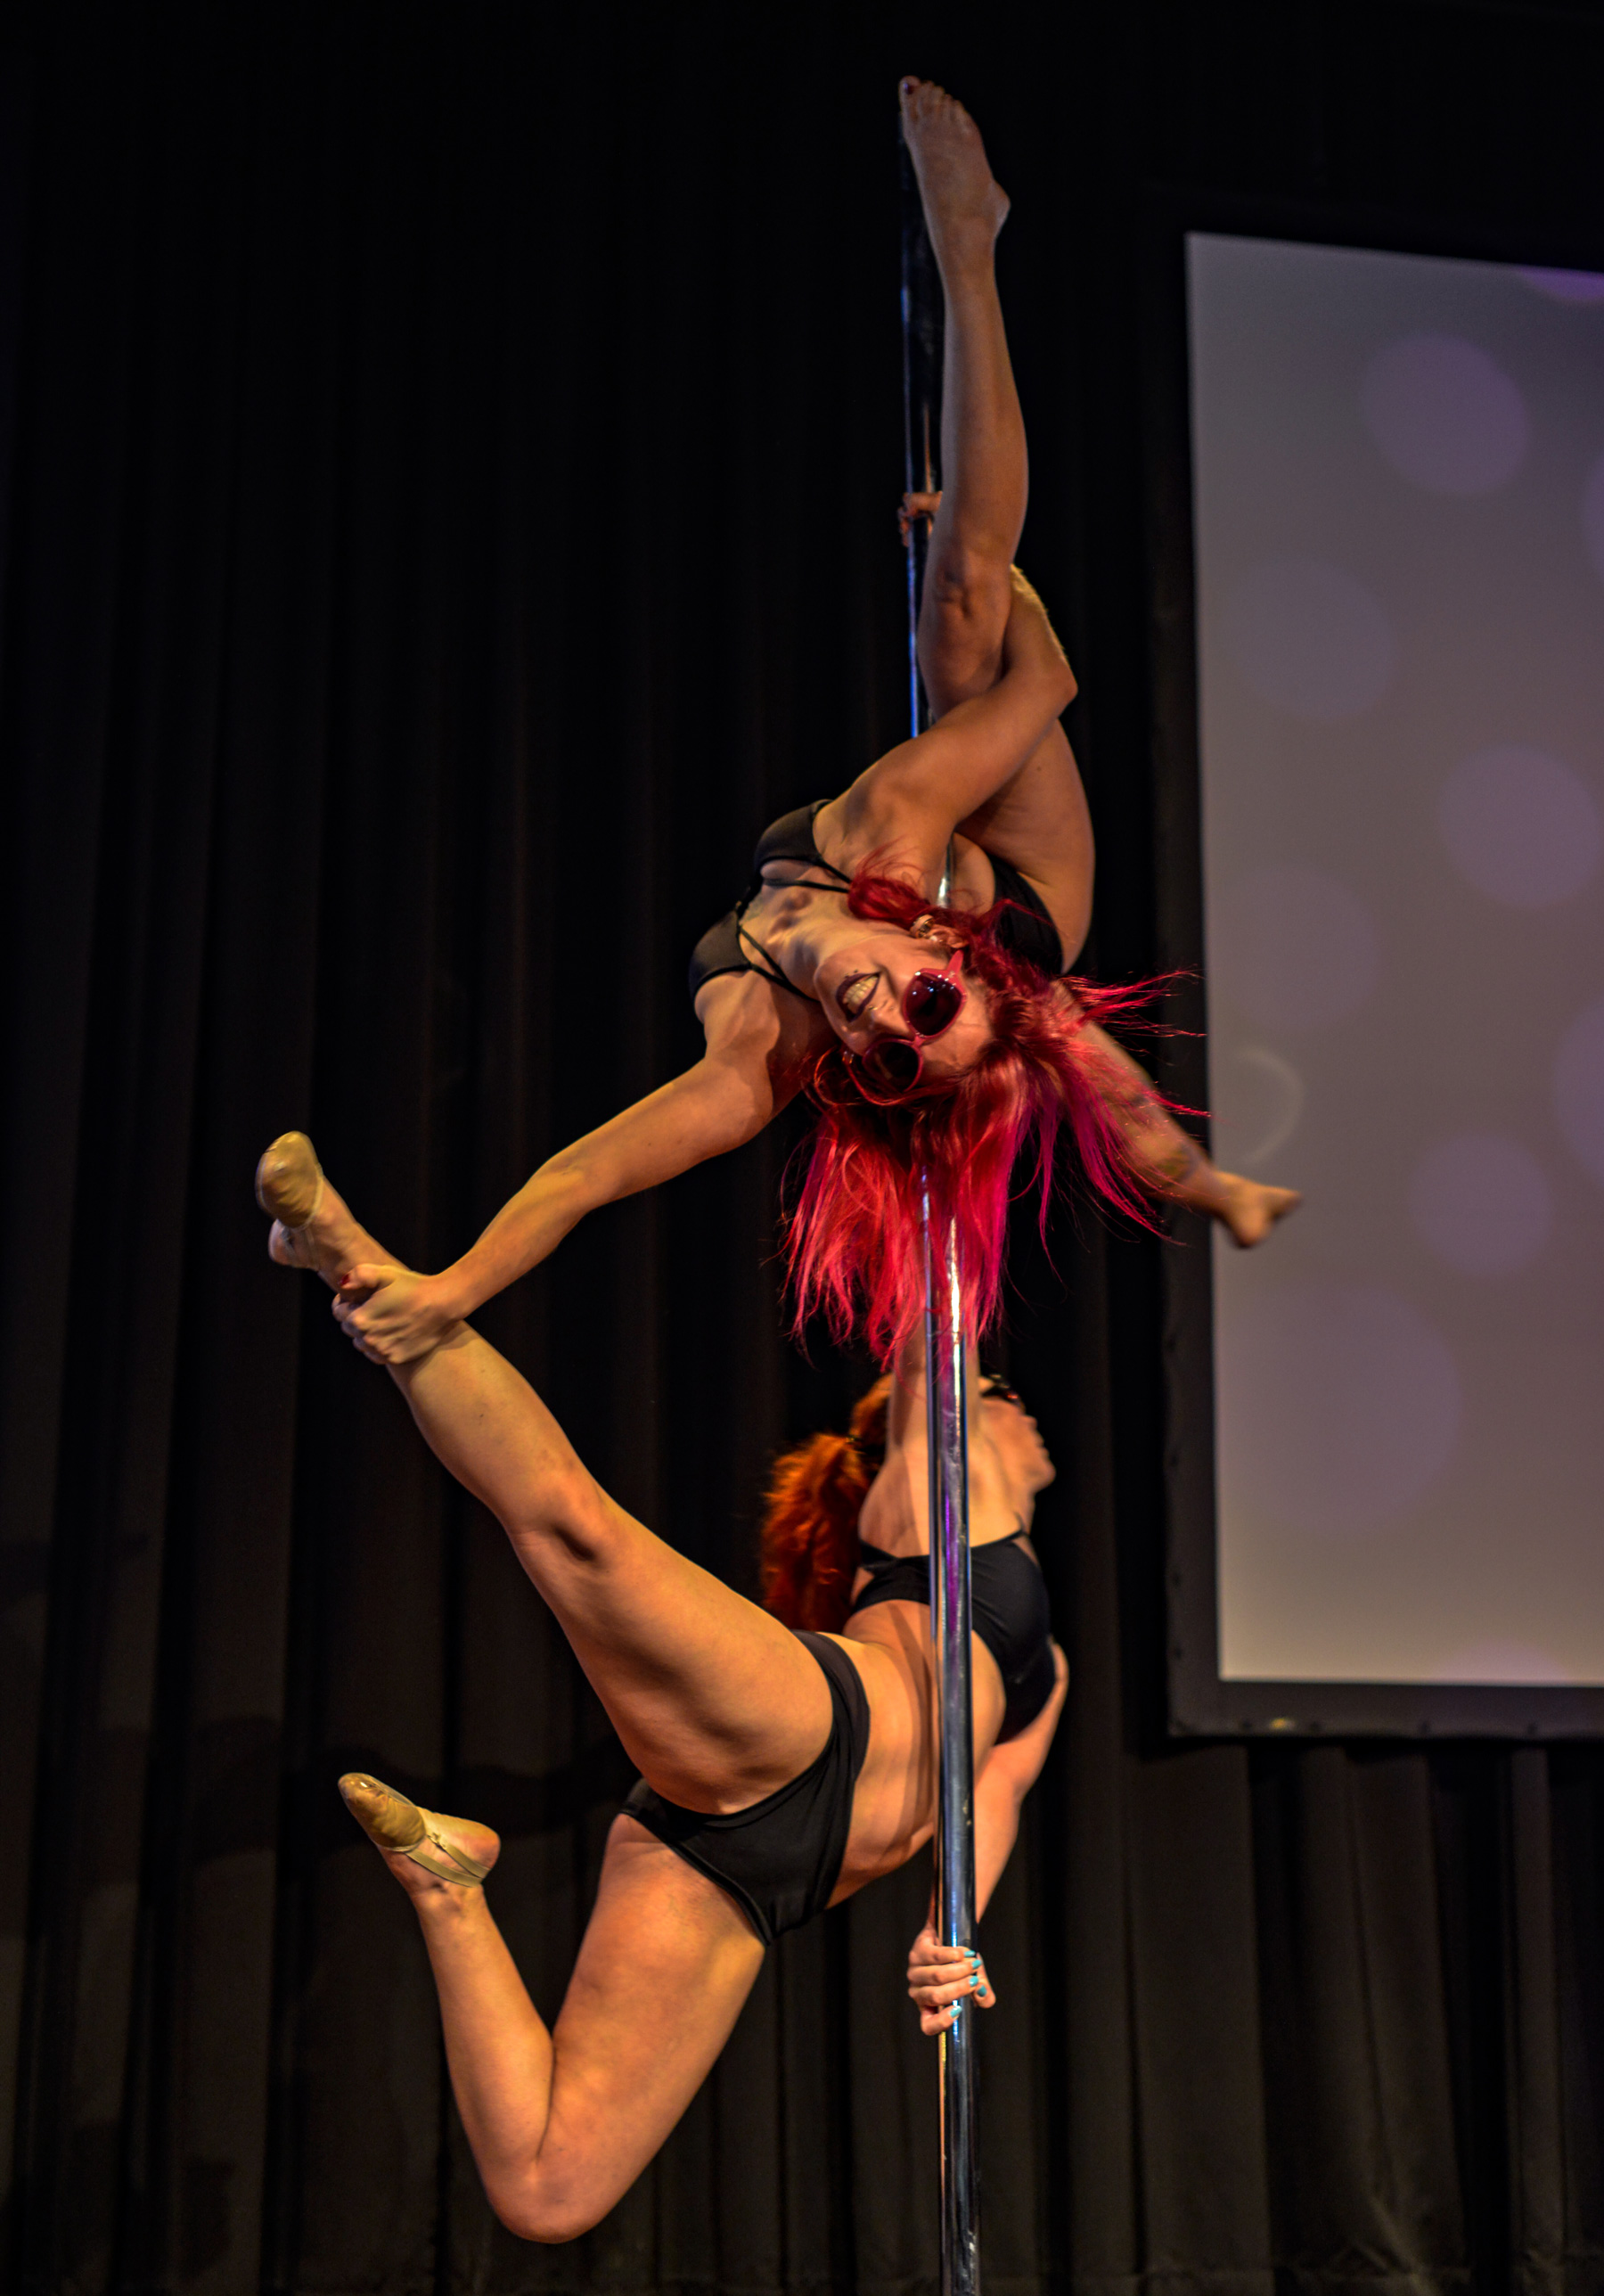 Workshops and Events Special workshops Mandy Candy's pole dance studio